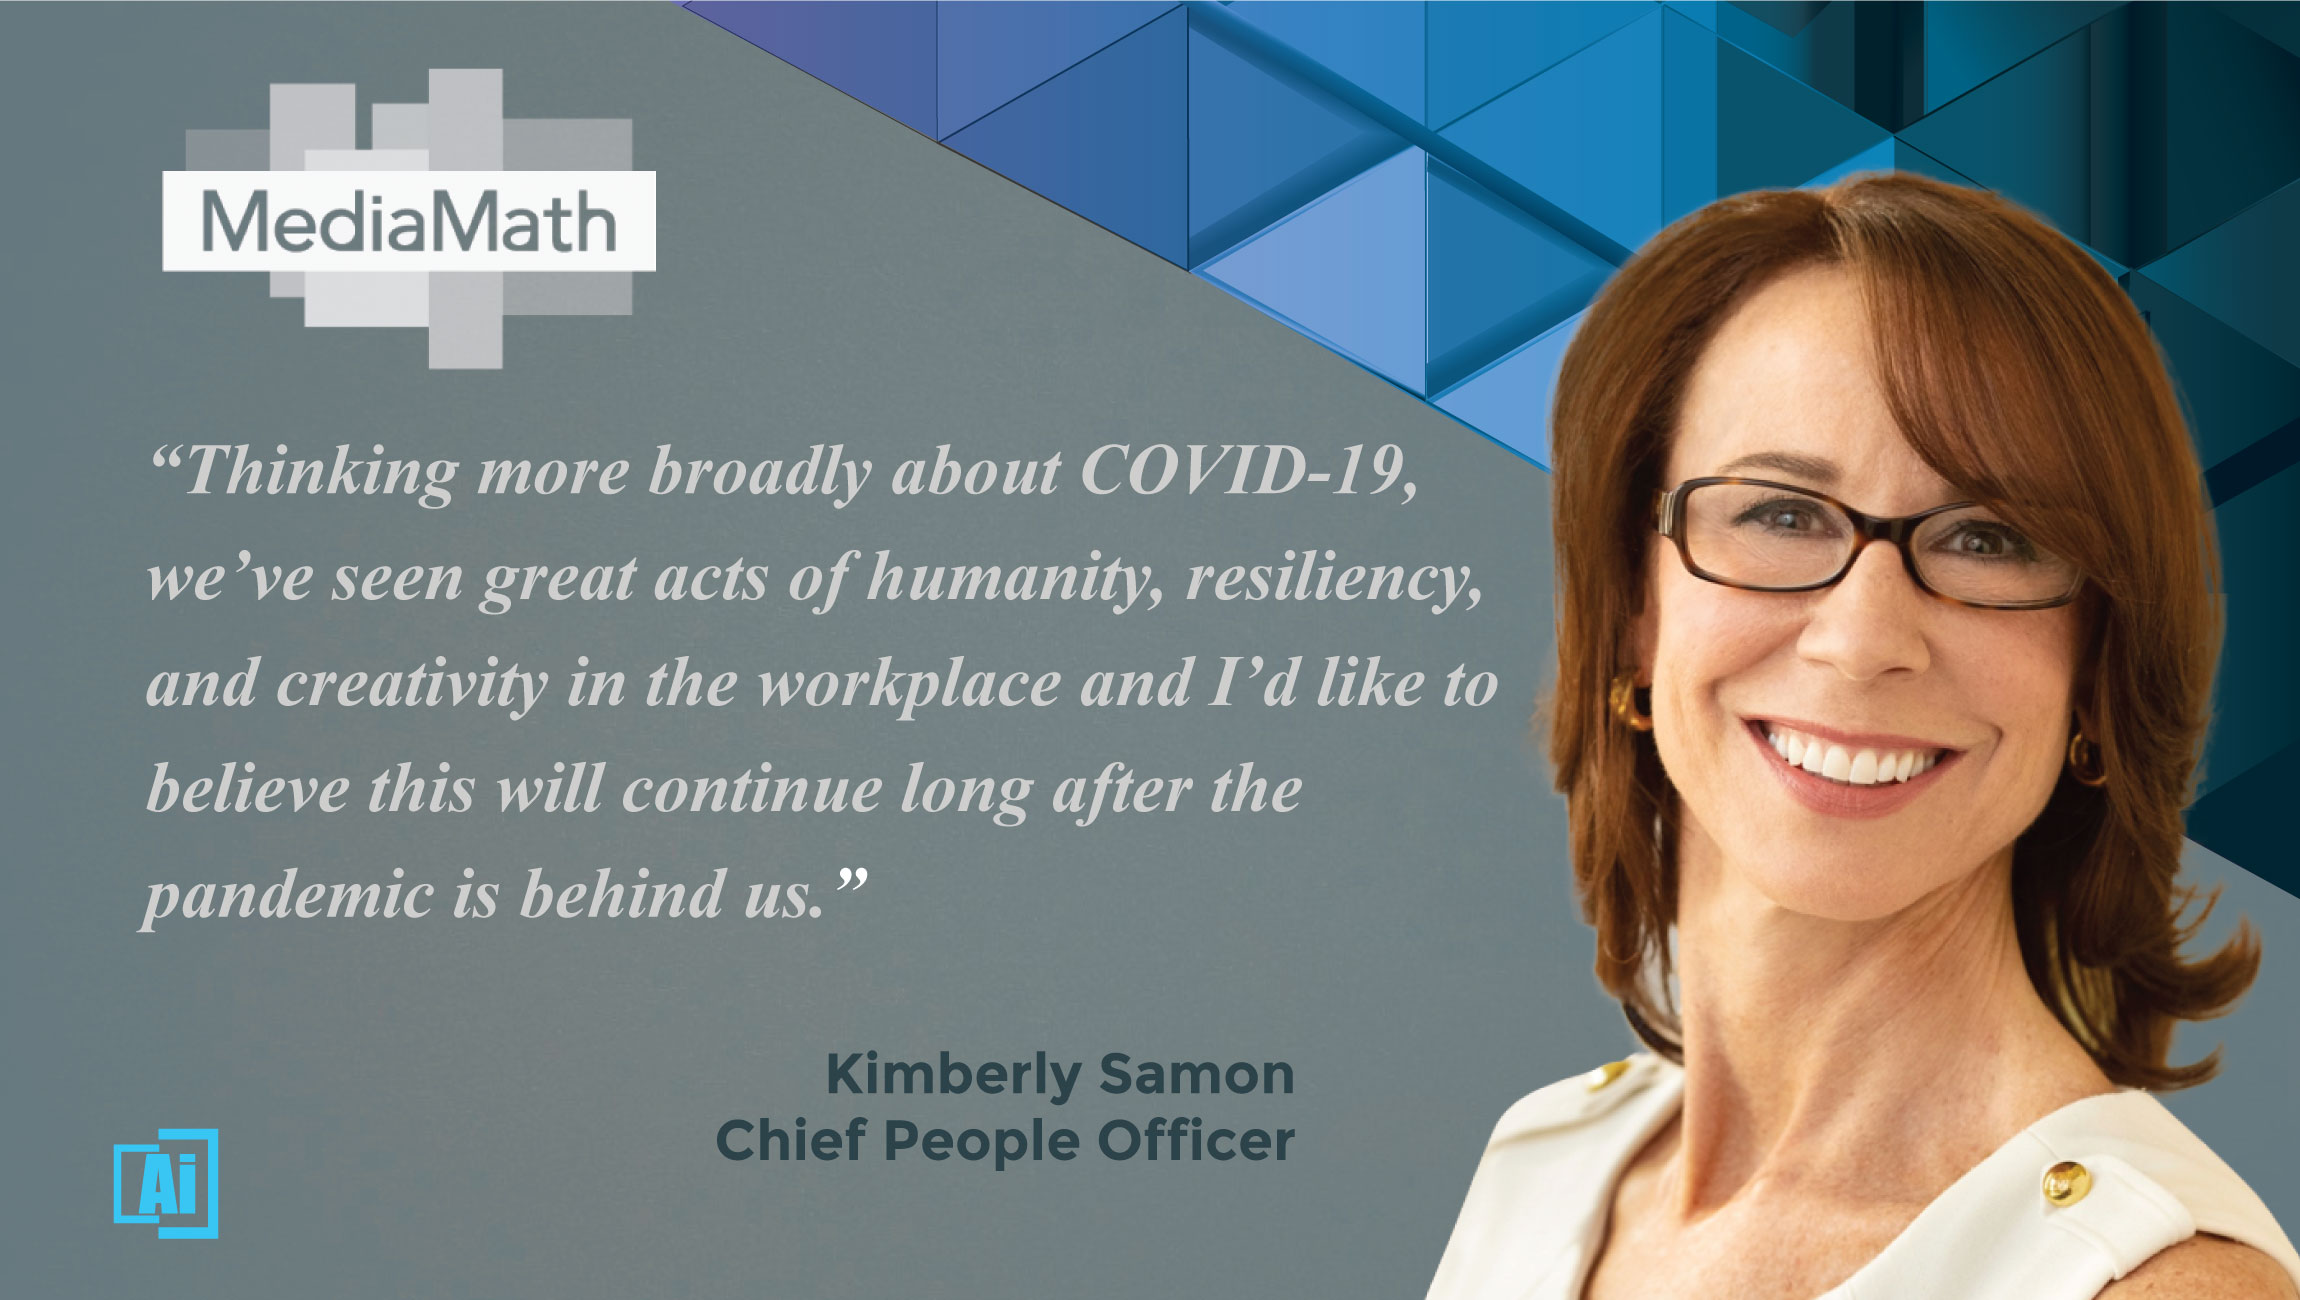 AiThority Interview With Kimberly Samon, Chief People Officer at MediaMath